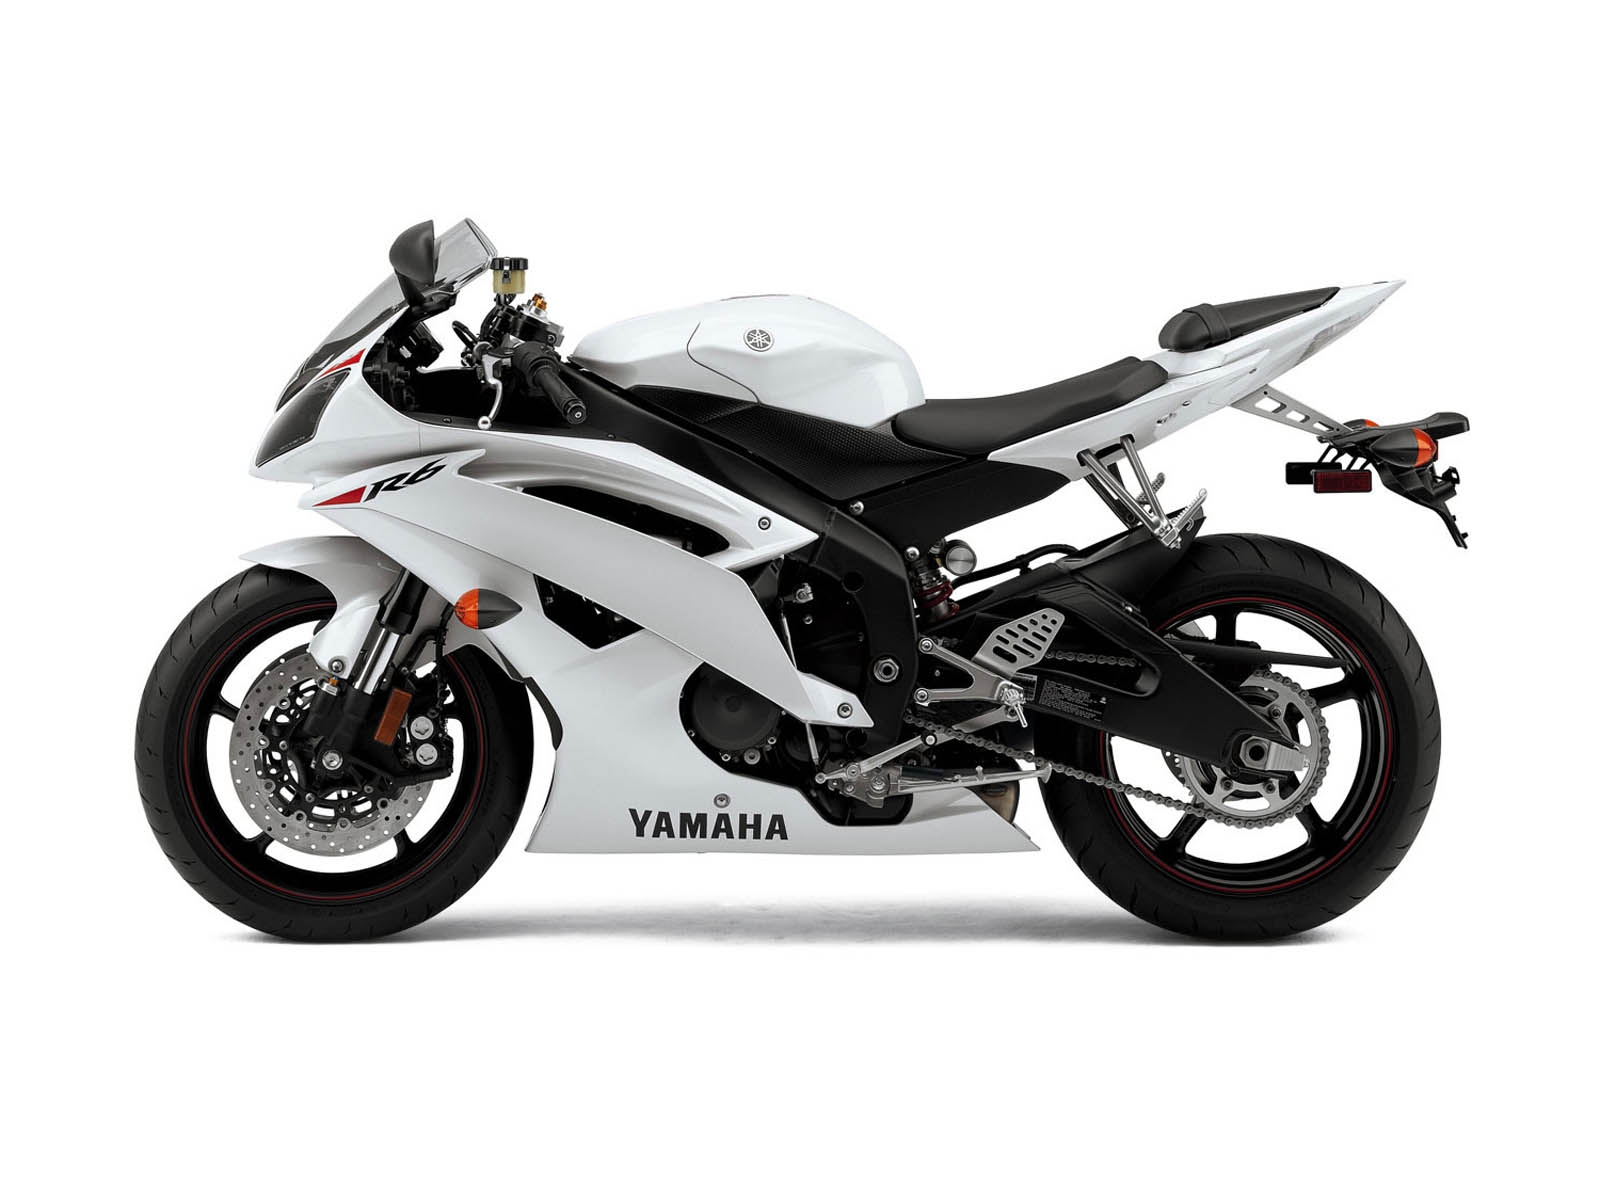 Yamaha Yzf r6 Black Wallpaper Tag Yamaha Yzf r6 Bike